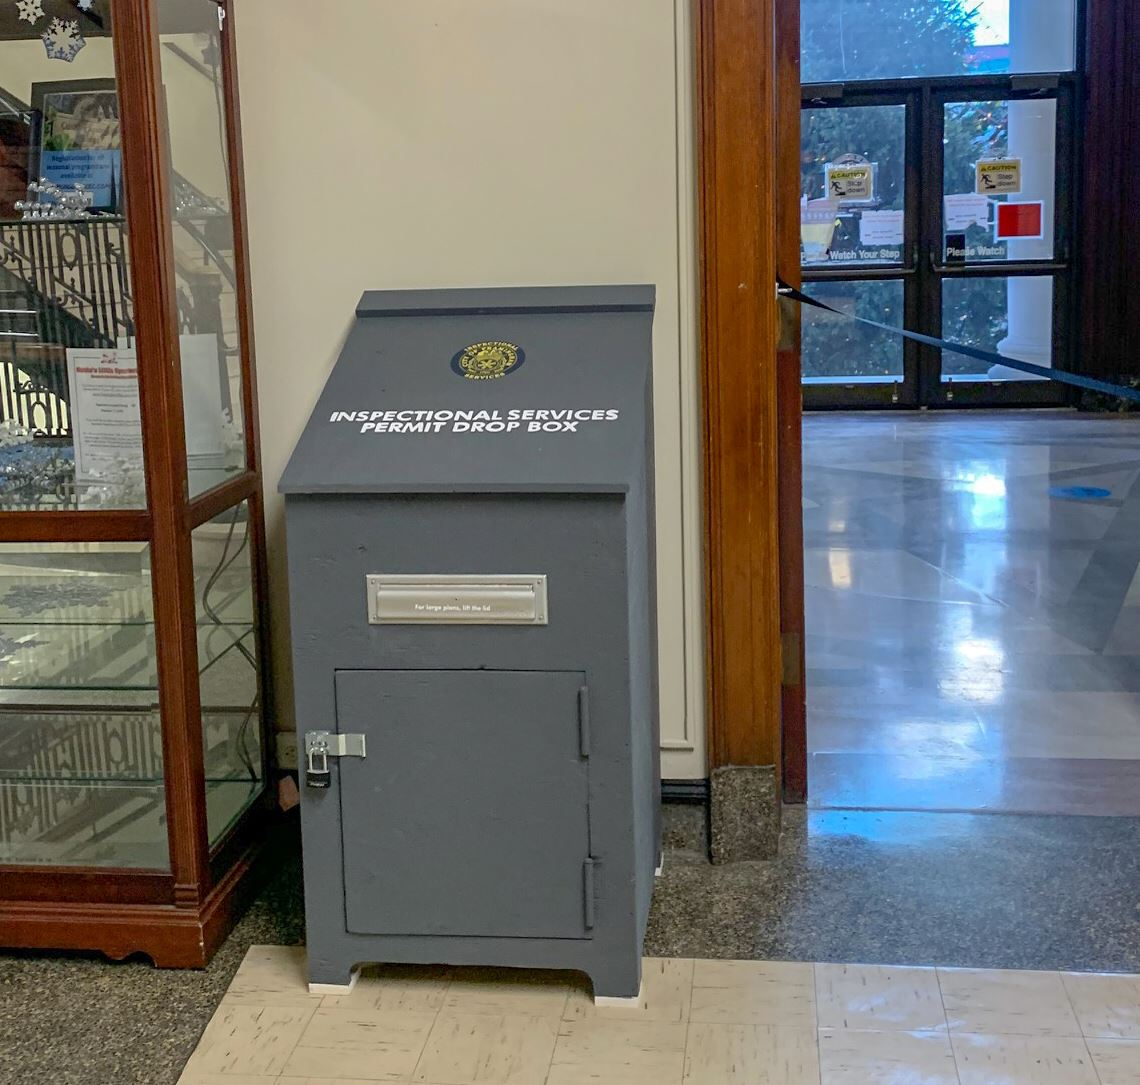 Image of a large grey Drop Box